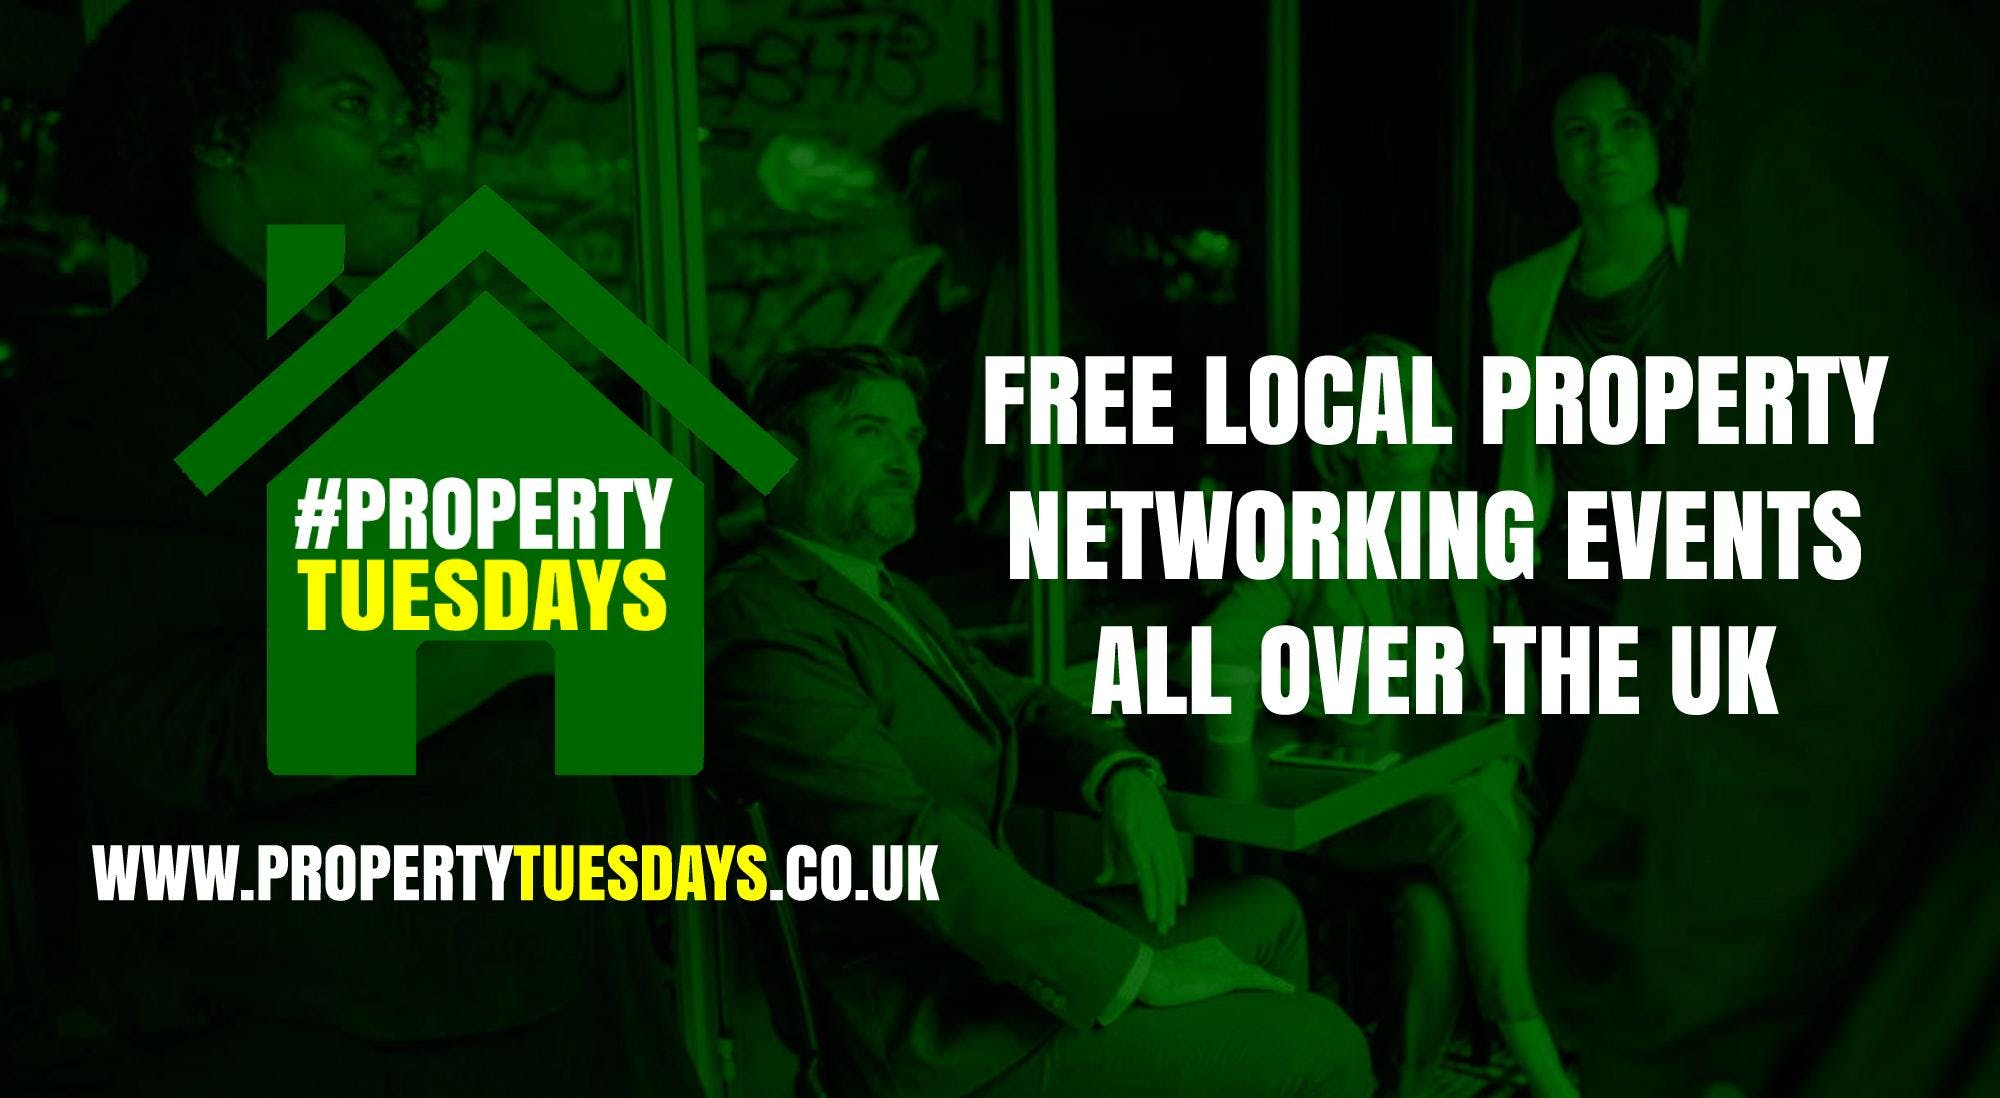 Property Tuesdays! Free property networking event in Hucknall